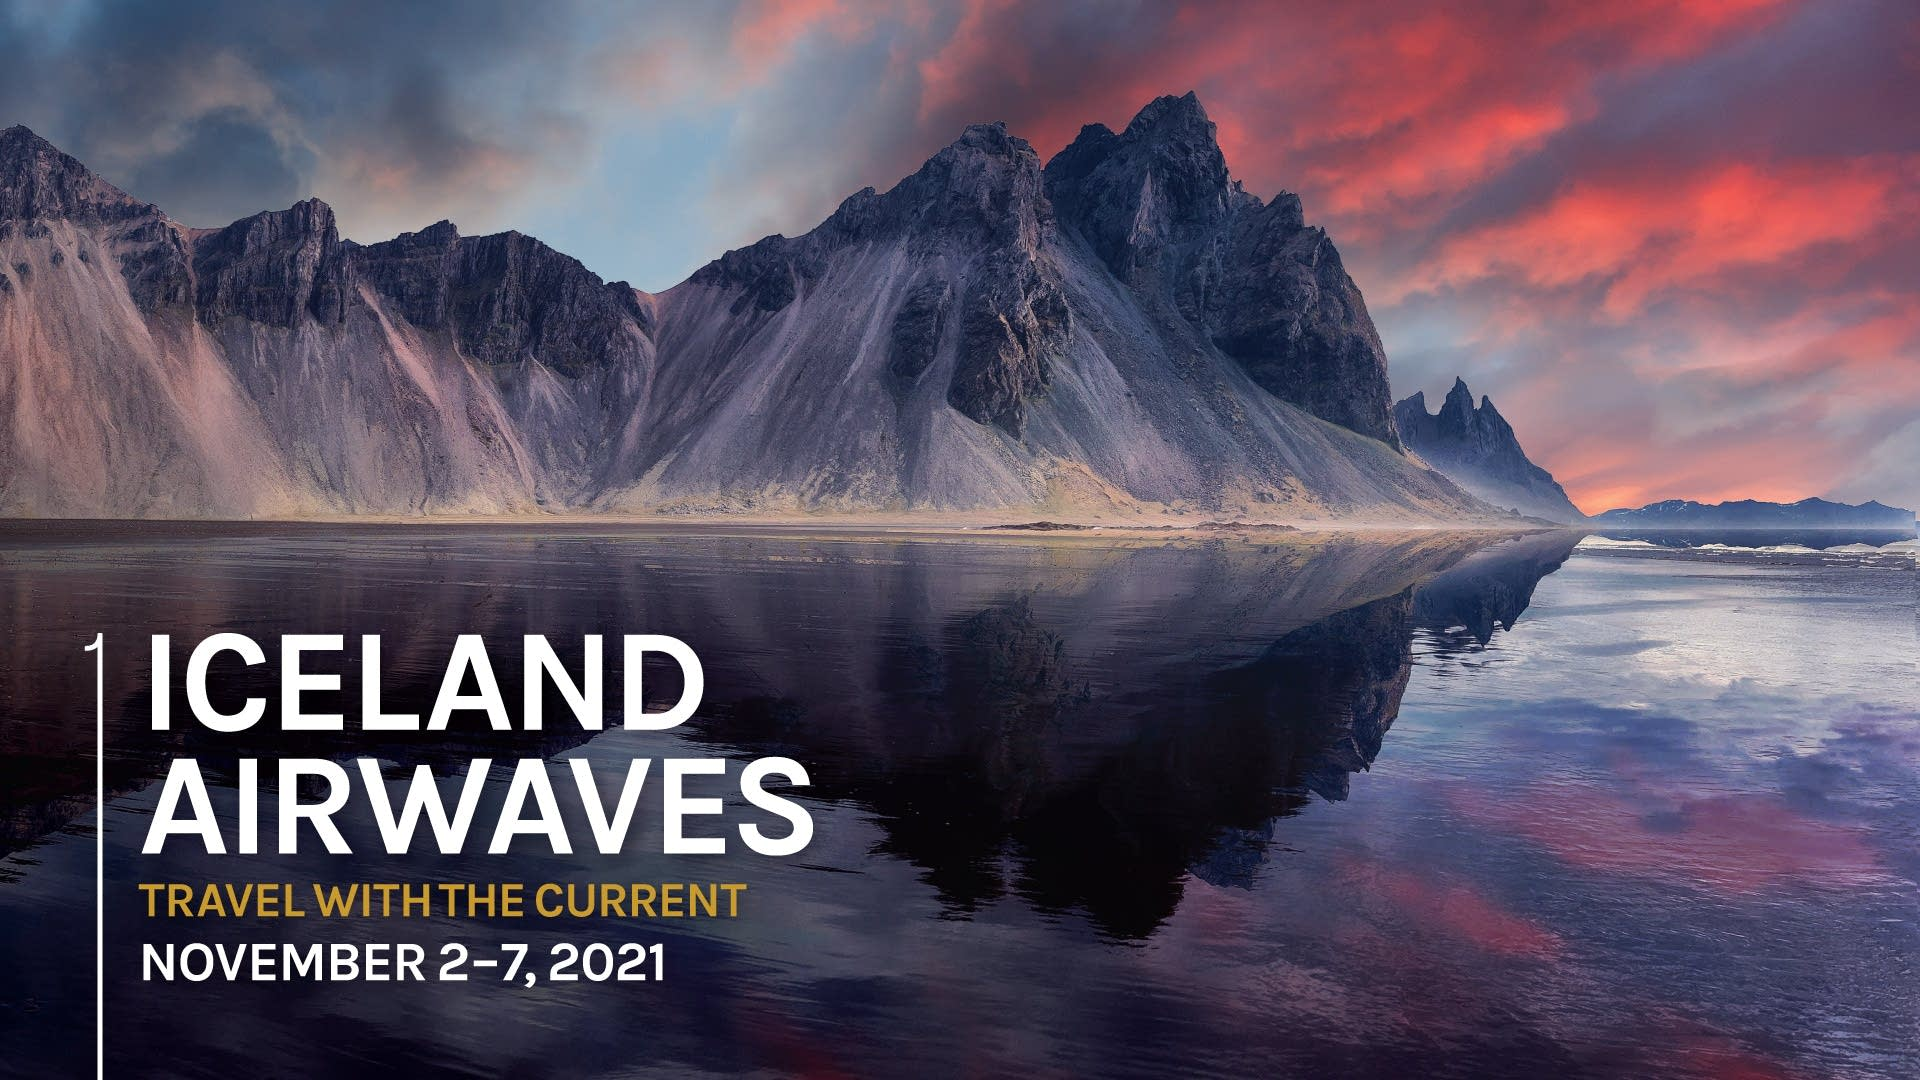 Iceland Airwaves - Travel with The Current 1920x1080